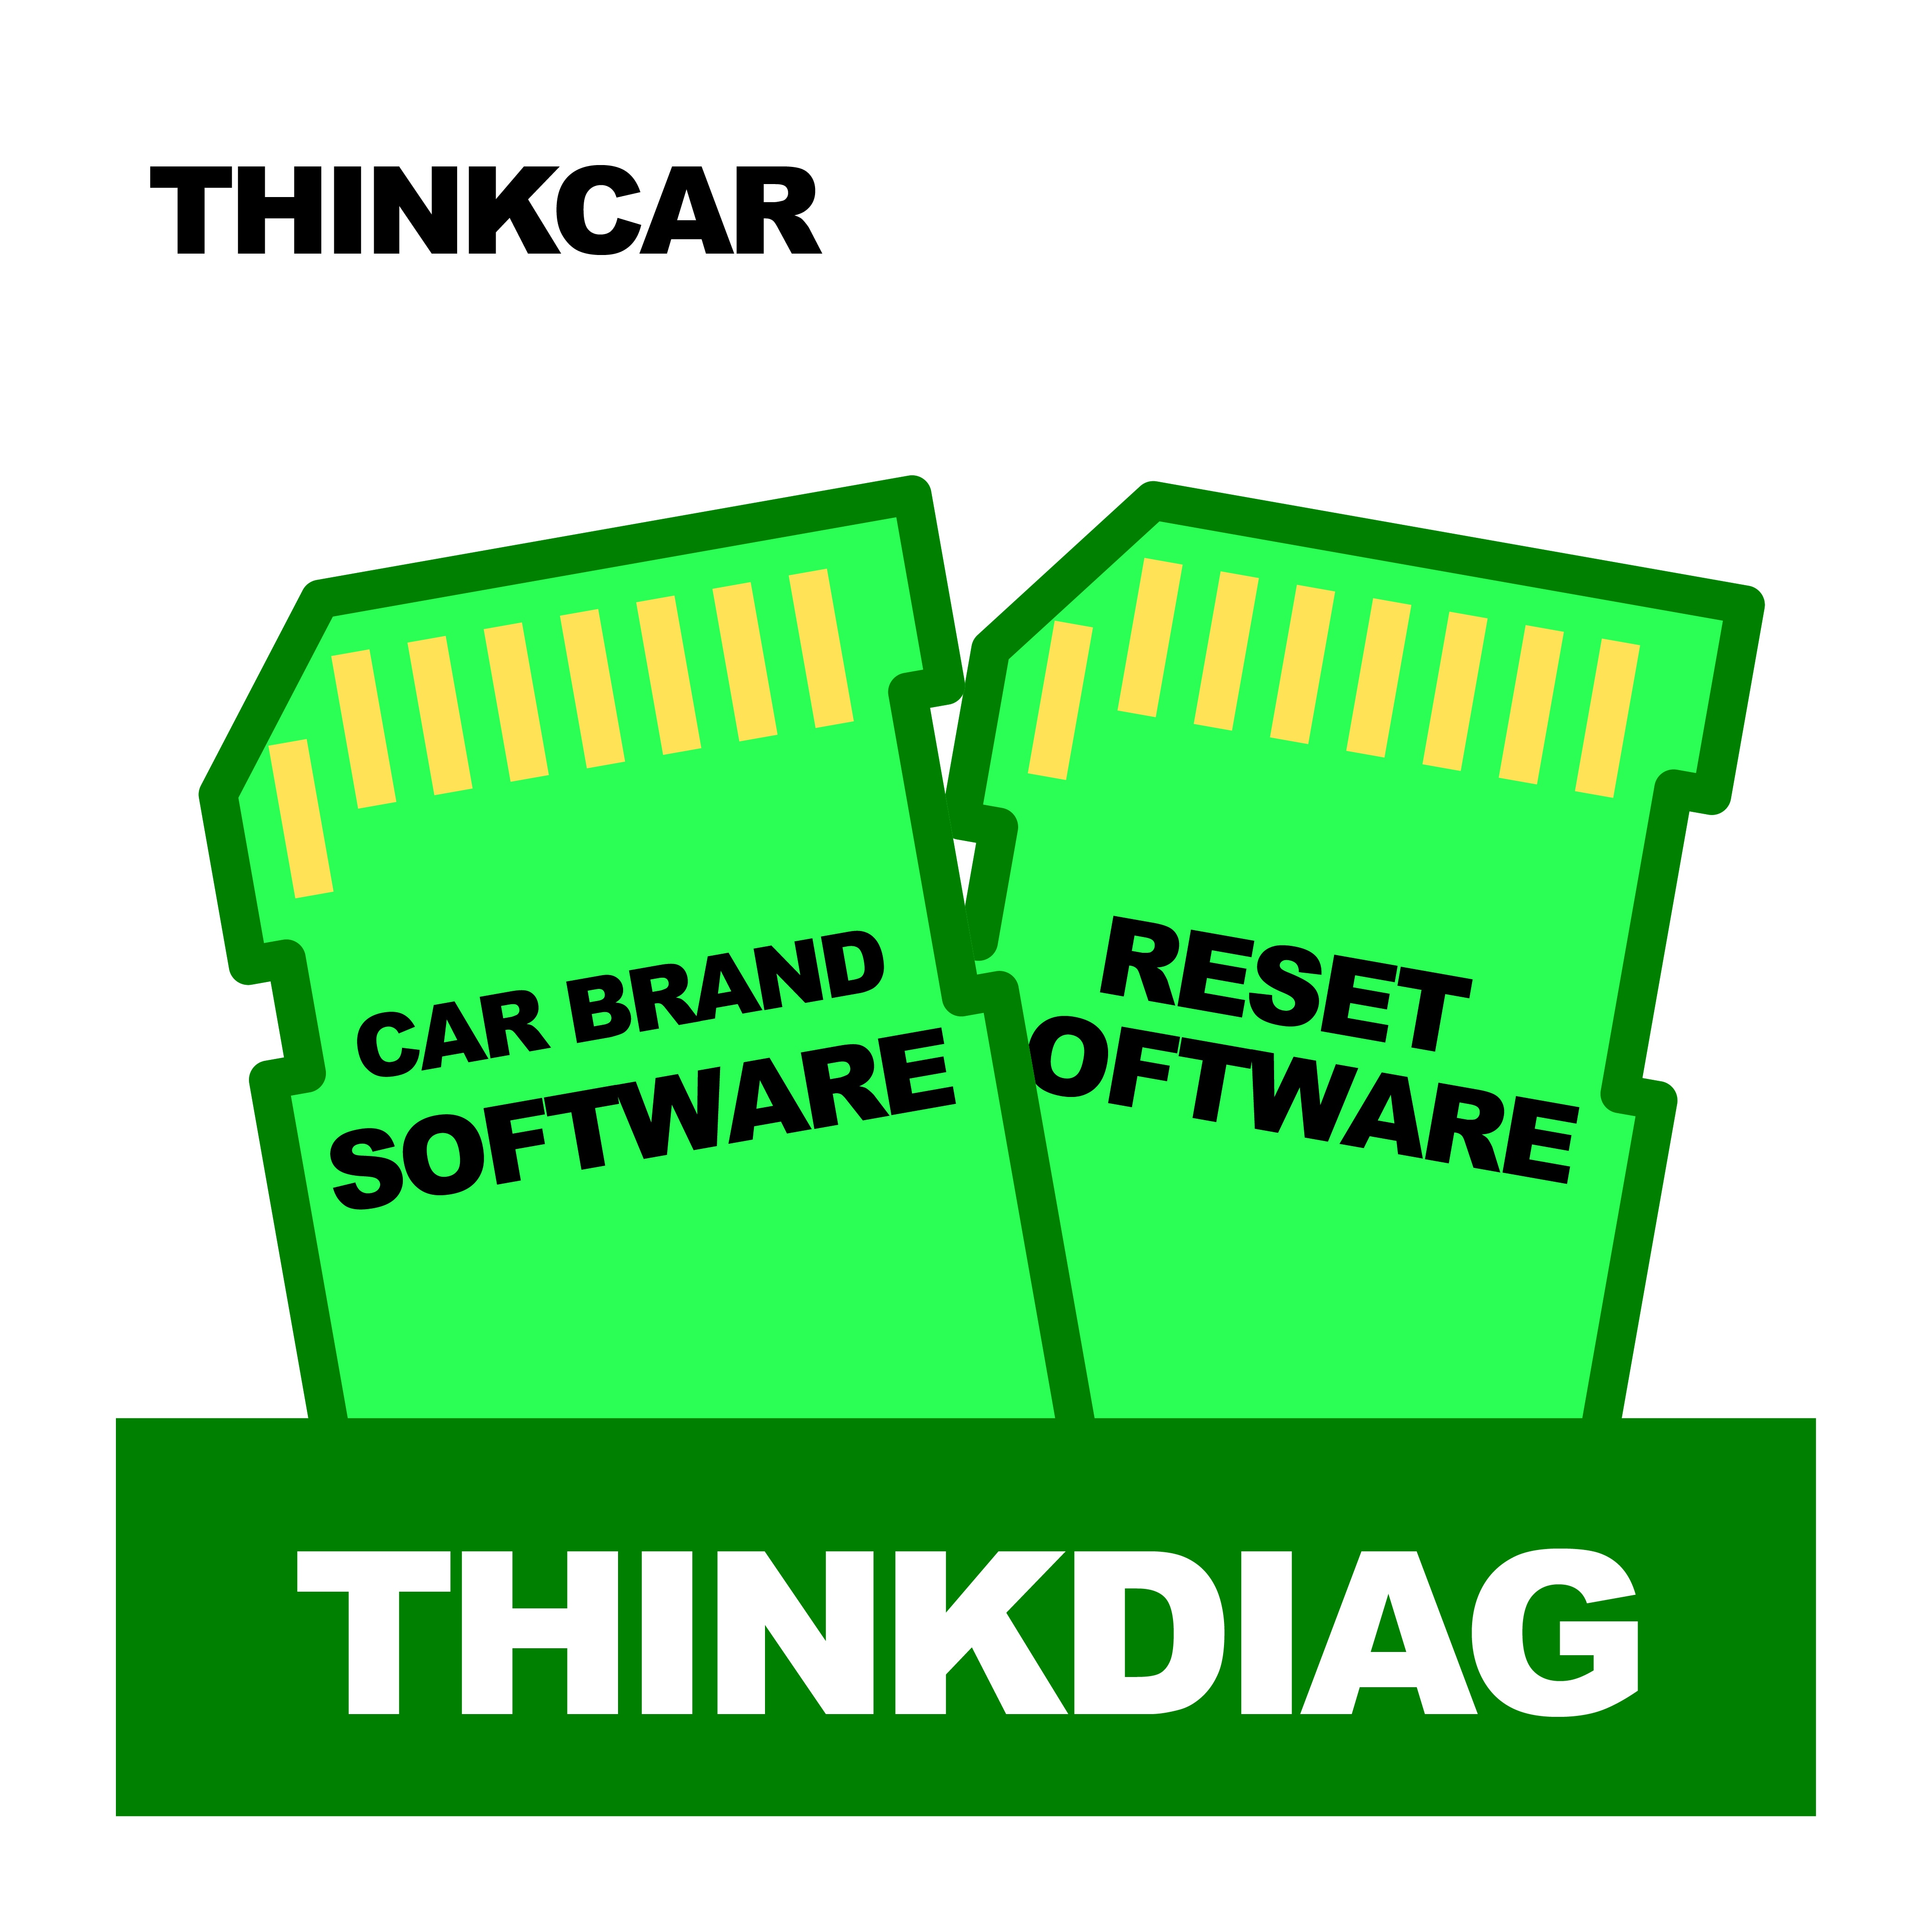 THINKCAR Full New Thinkdiag All software for 2 Year Easy Open Car Manufacturer Reset Software Activate Software for Thinkdiag